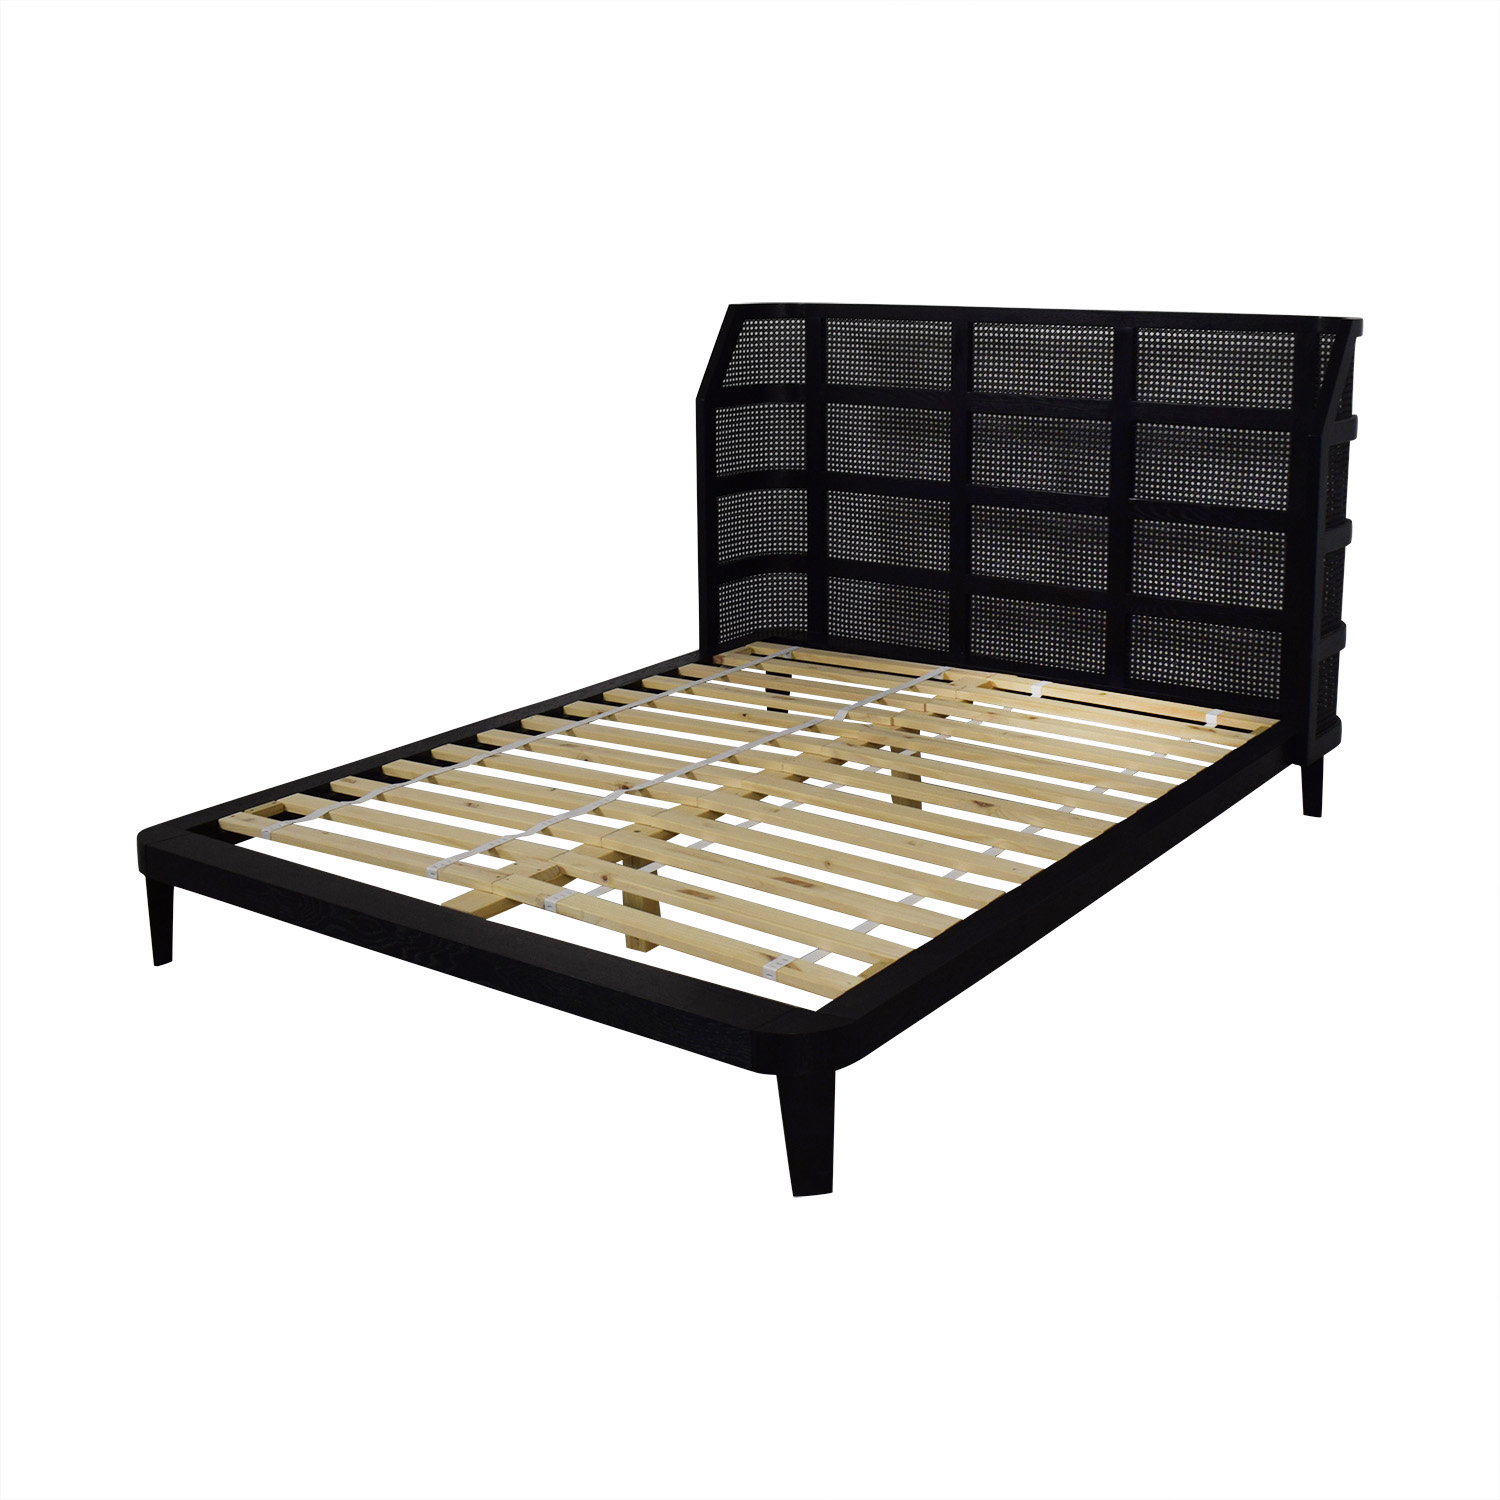 CB2 Seville Full Bed / Beds